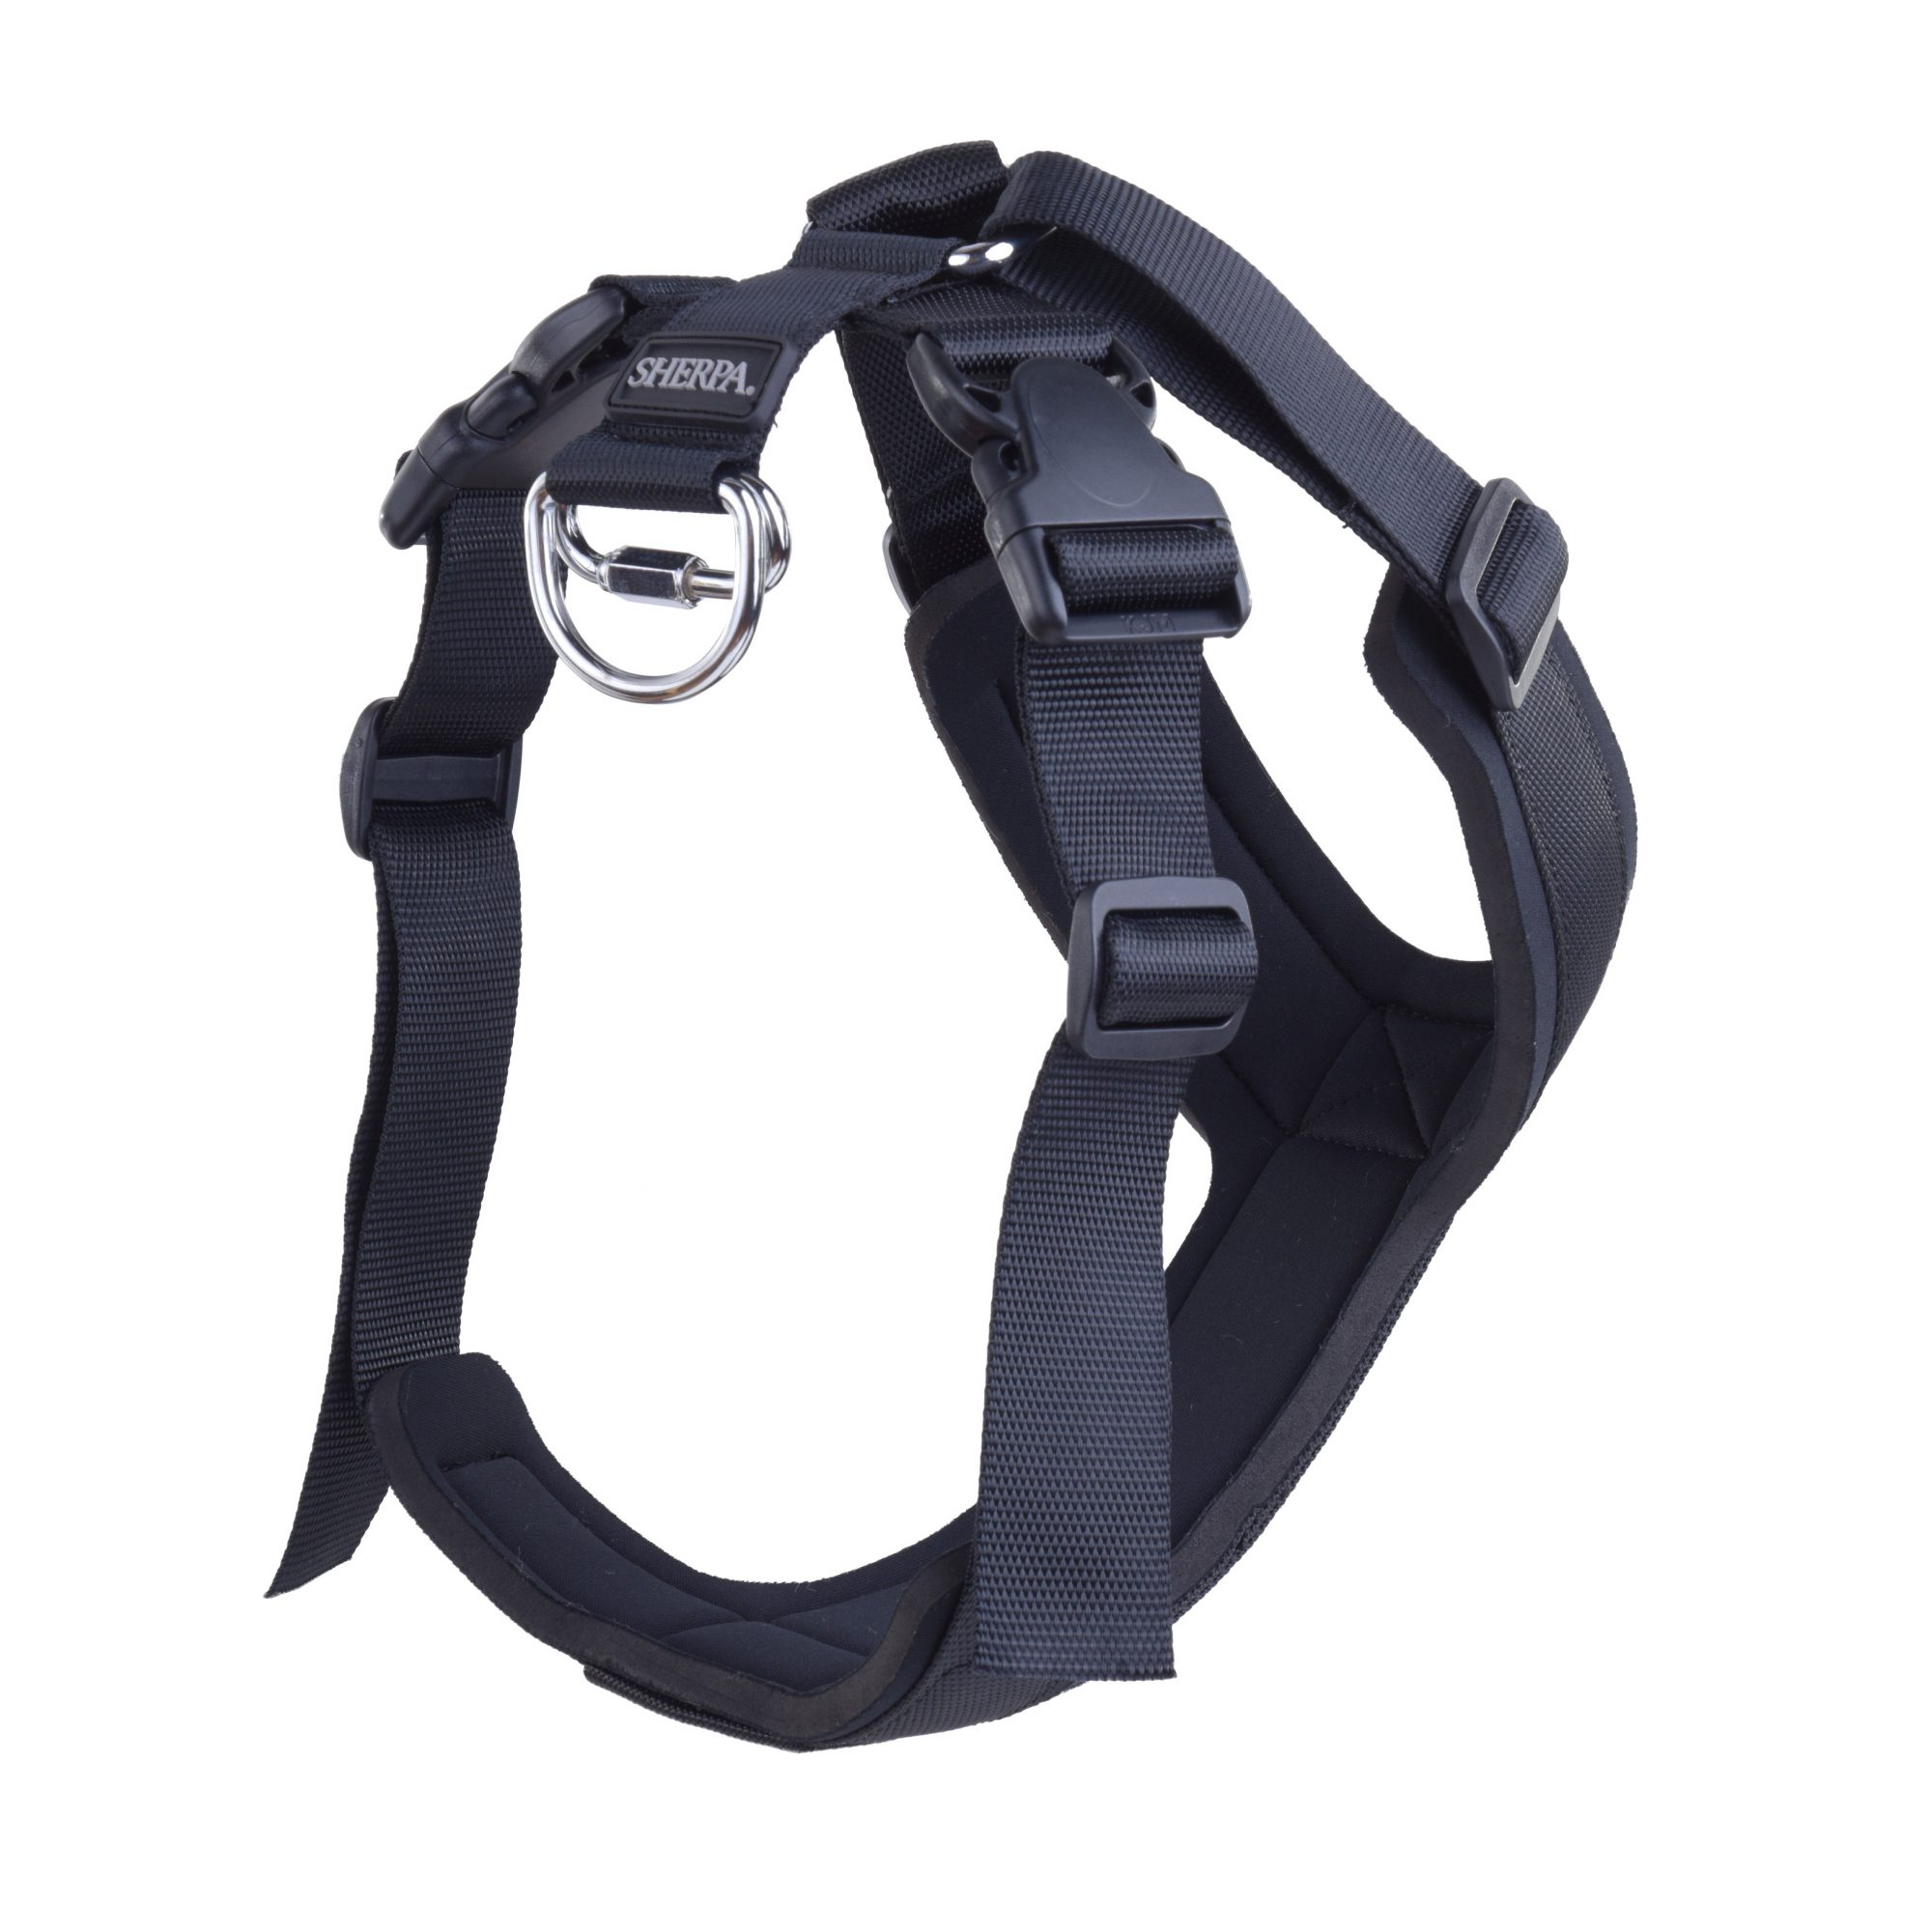 sherpa-crash-tested-seat-belt-safety-harness